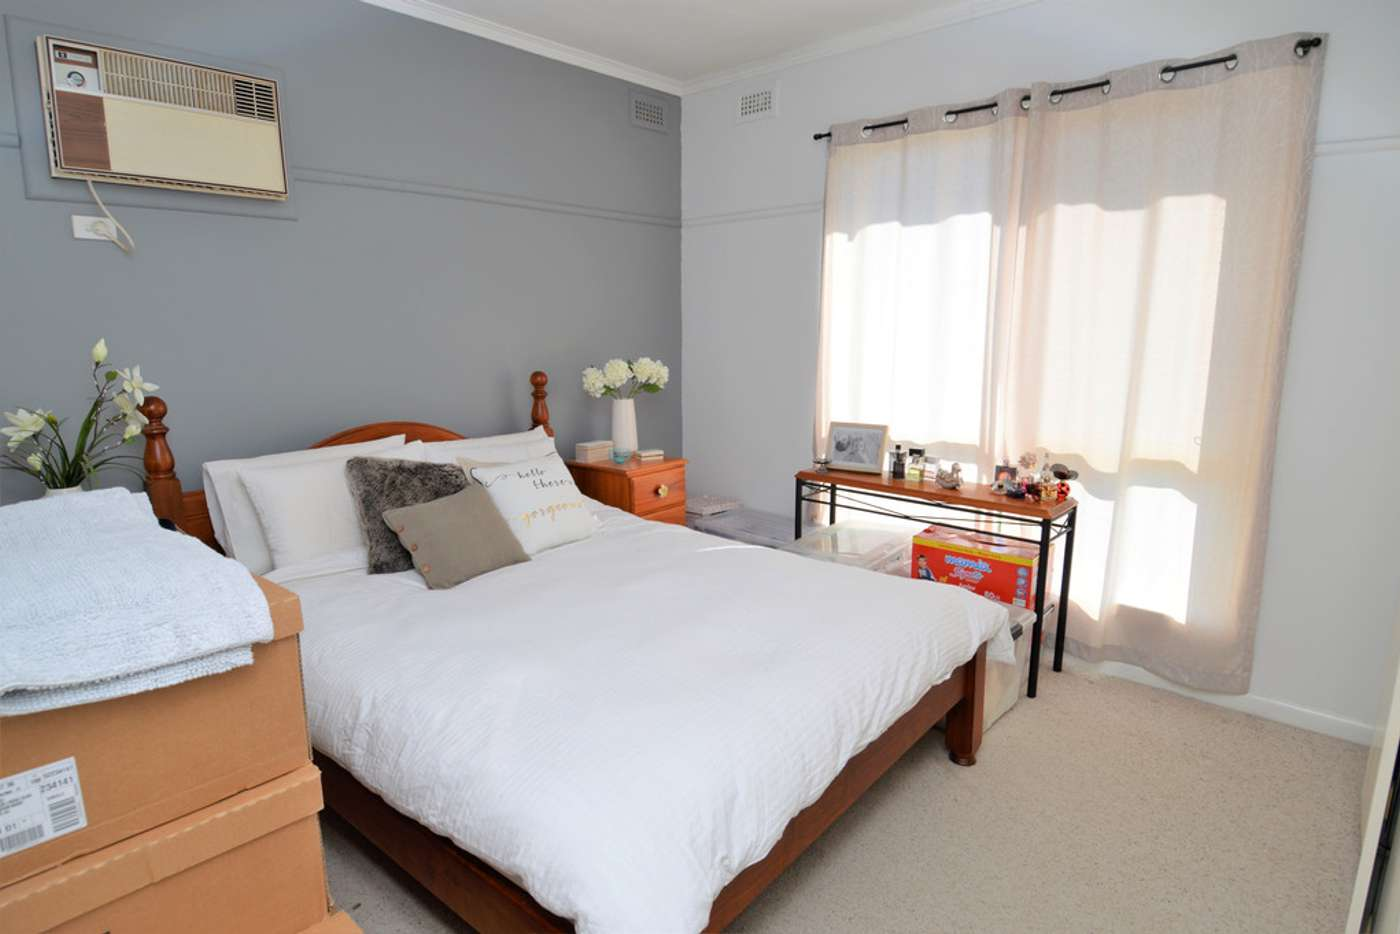 Seventh view of Homely house listing, 5 Garden Crescent, Echuca VIC 3564